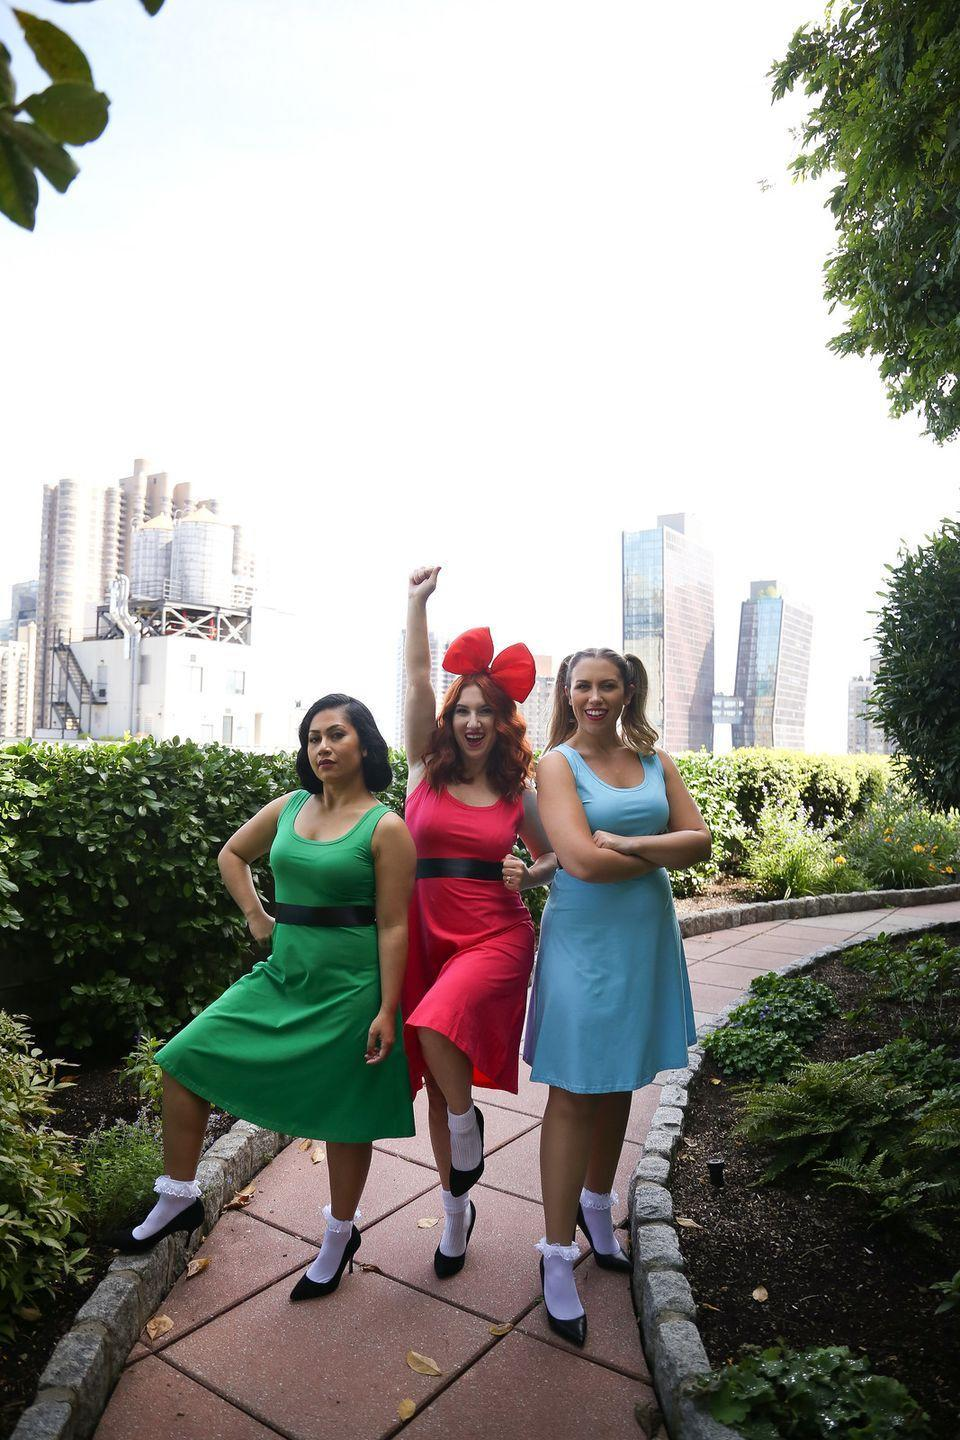 """<p>First, figure out which of your friends identify closest with Blossom, Buttercup, and Bubbles. Then dress the part with colored dresses that match each character's costume. </p><p><em><a href=""""http://livingaftermidnite.com/2019/10/group-halloween-costumes-that-will-win-you-best-dressed.html"""" rel=""""nofollow noopener"""" target=""""_blank"""" data-ylk=""""slk:Get the tutorial at Living After Midnite >>"""" class=""""link rapid-noclick-resp"""">Get the tutorial at Living After Midnite >></a><br></em></p>"""